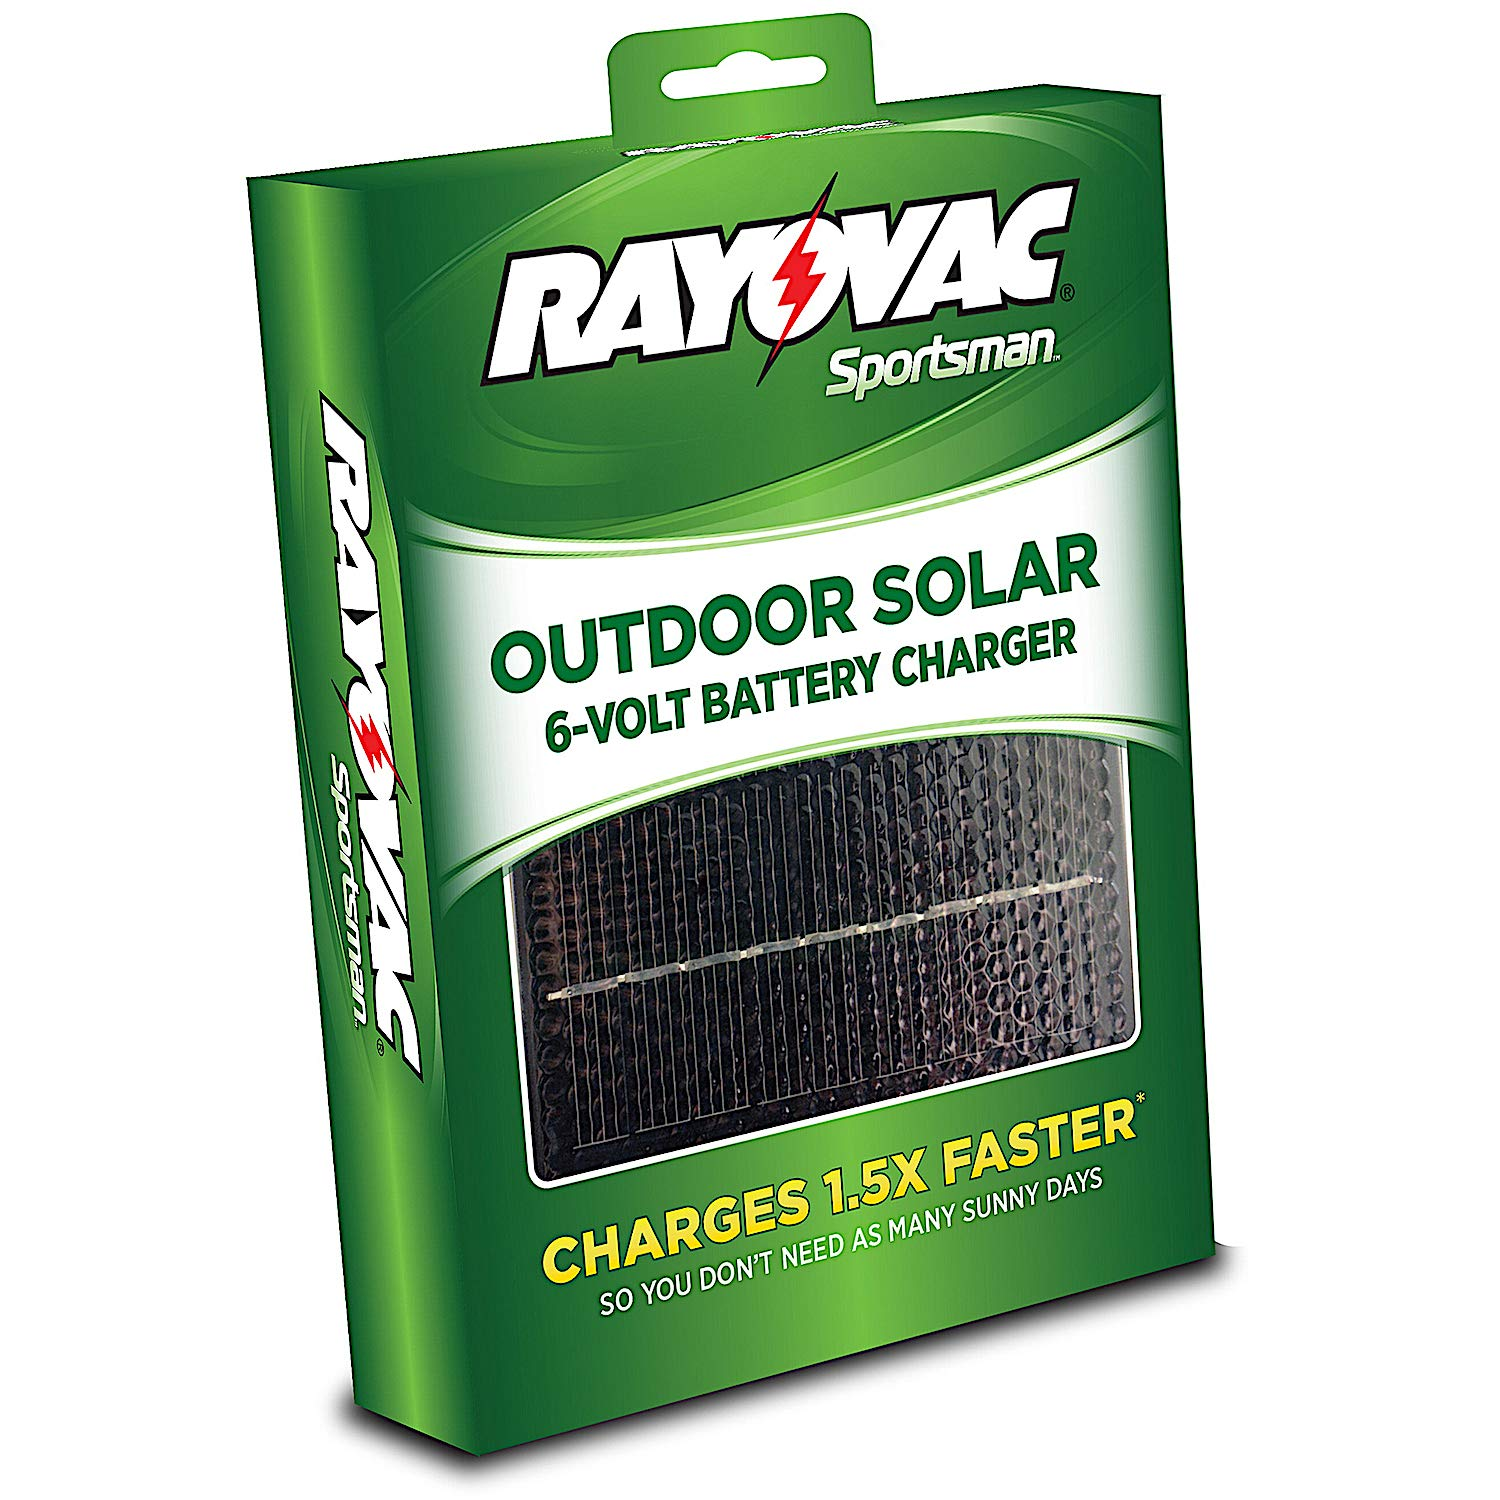 Rayovac Sportsman Outdoor Solar 6-Volt Battery Charger